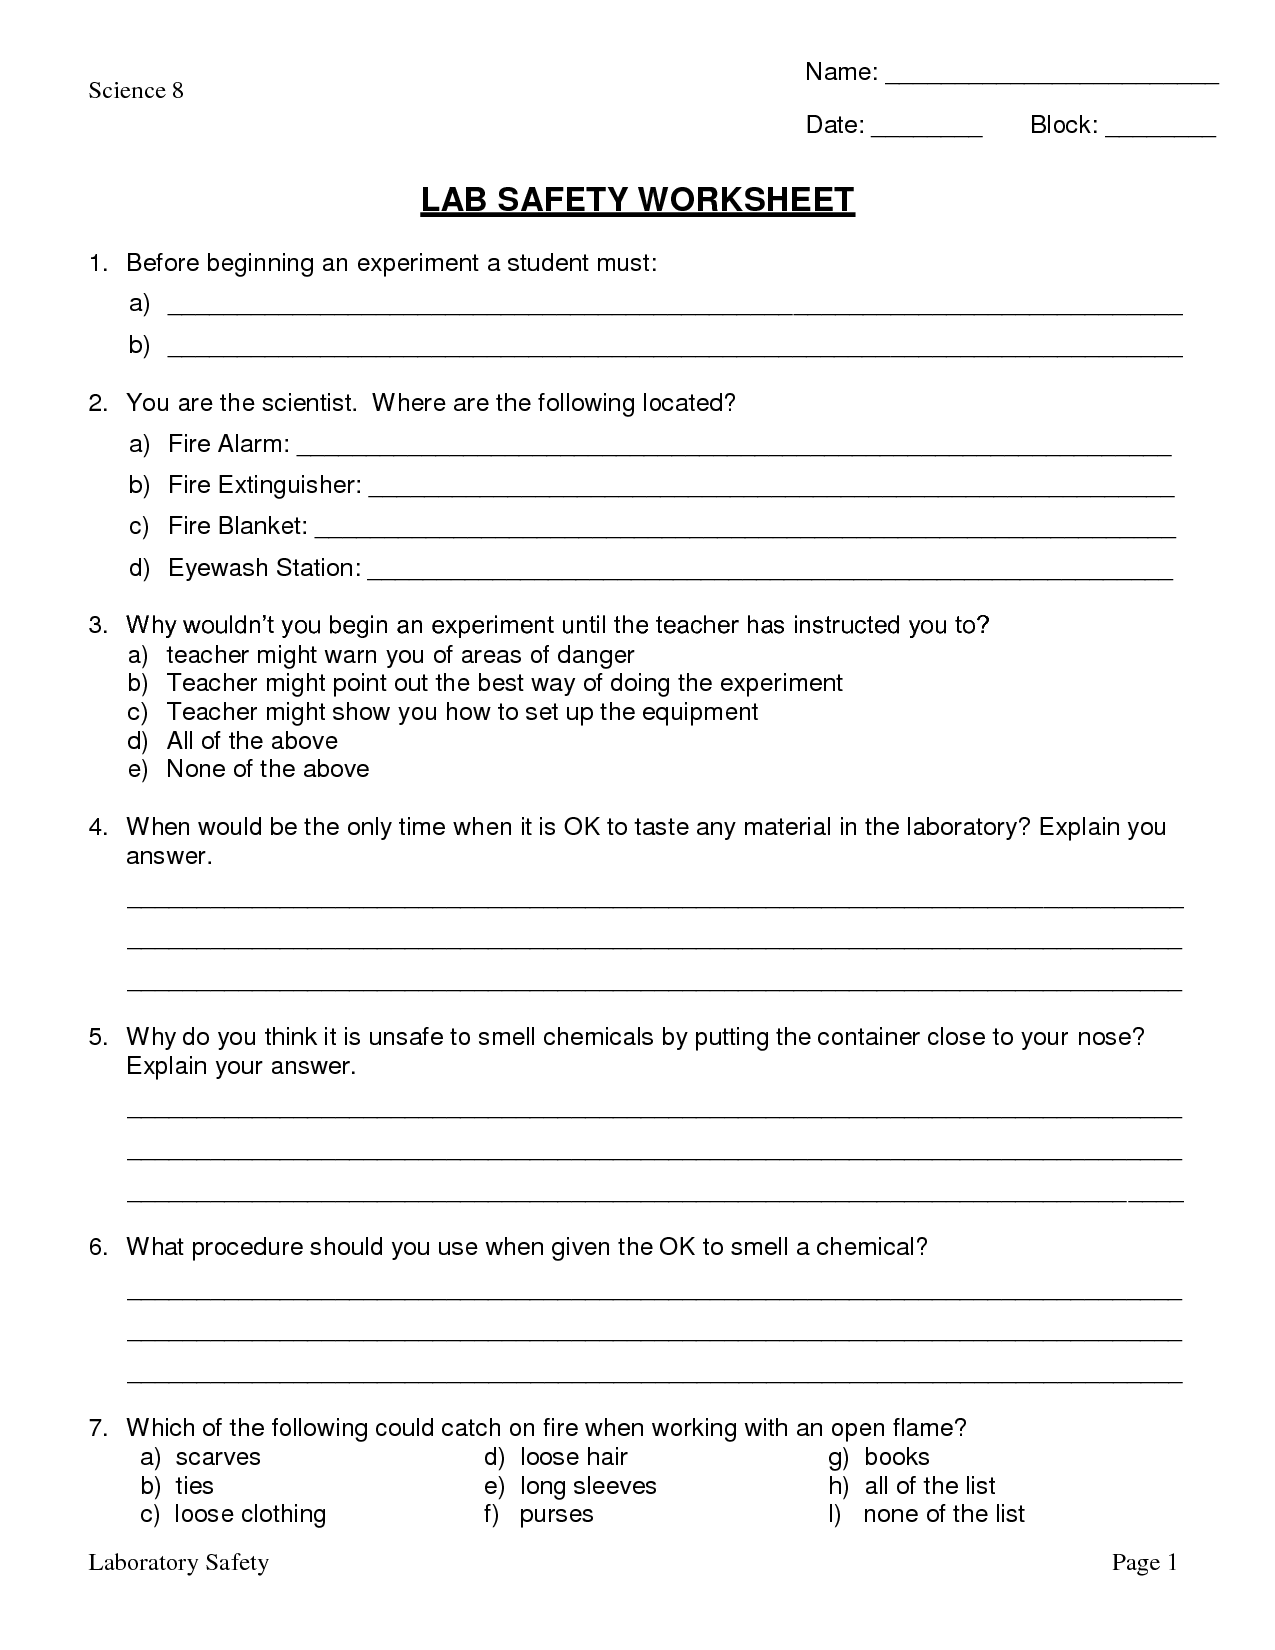 Science Lab Safety Worksheets And Answers  Science  Best Free